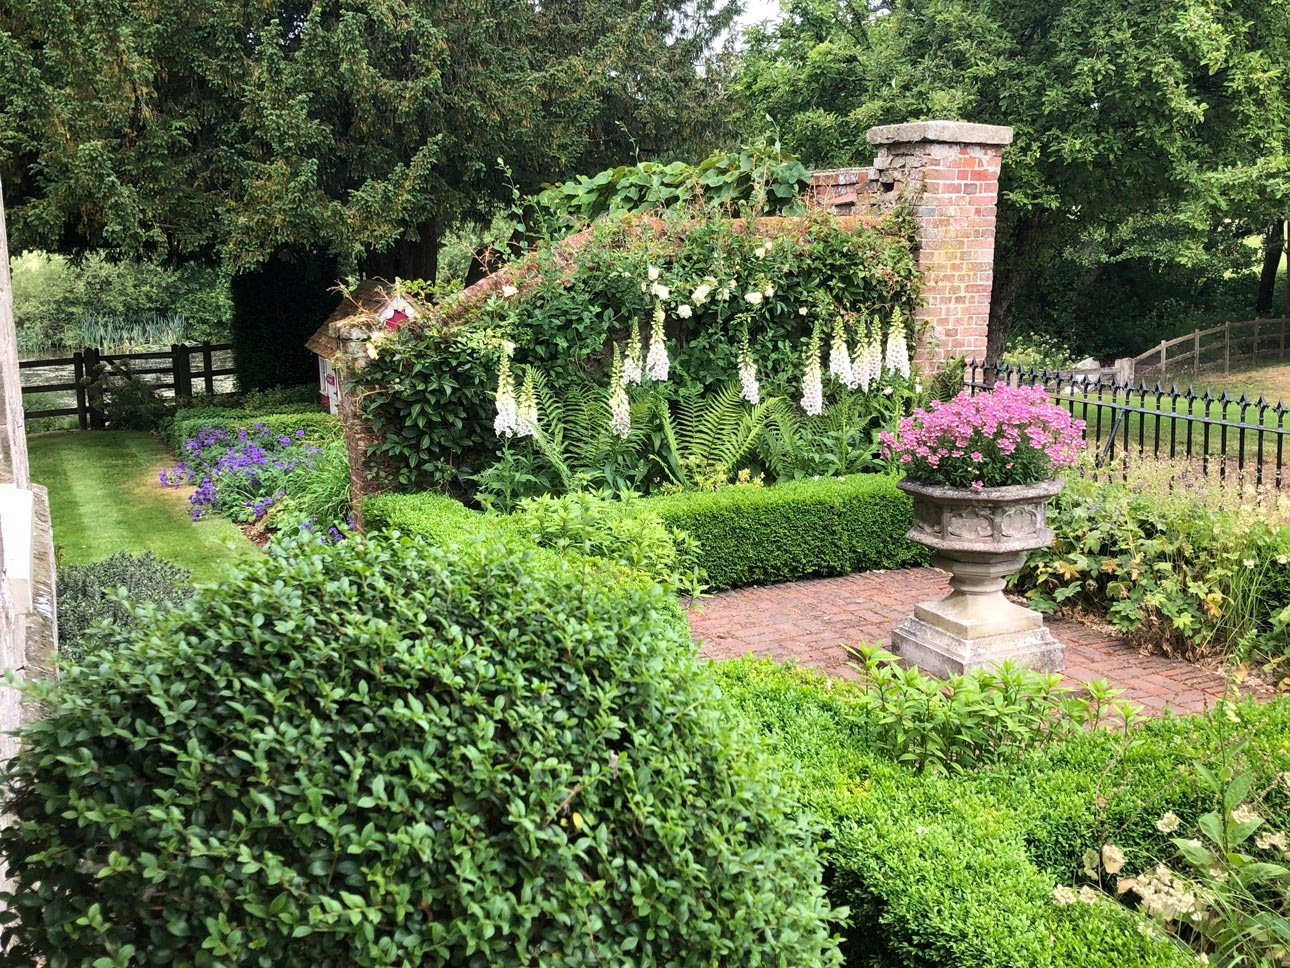 Sheltered front garden courtyard with brick walls, paths, box hedging, foxgloves and ferns planting design by Ann-Marie Powell